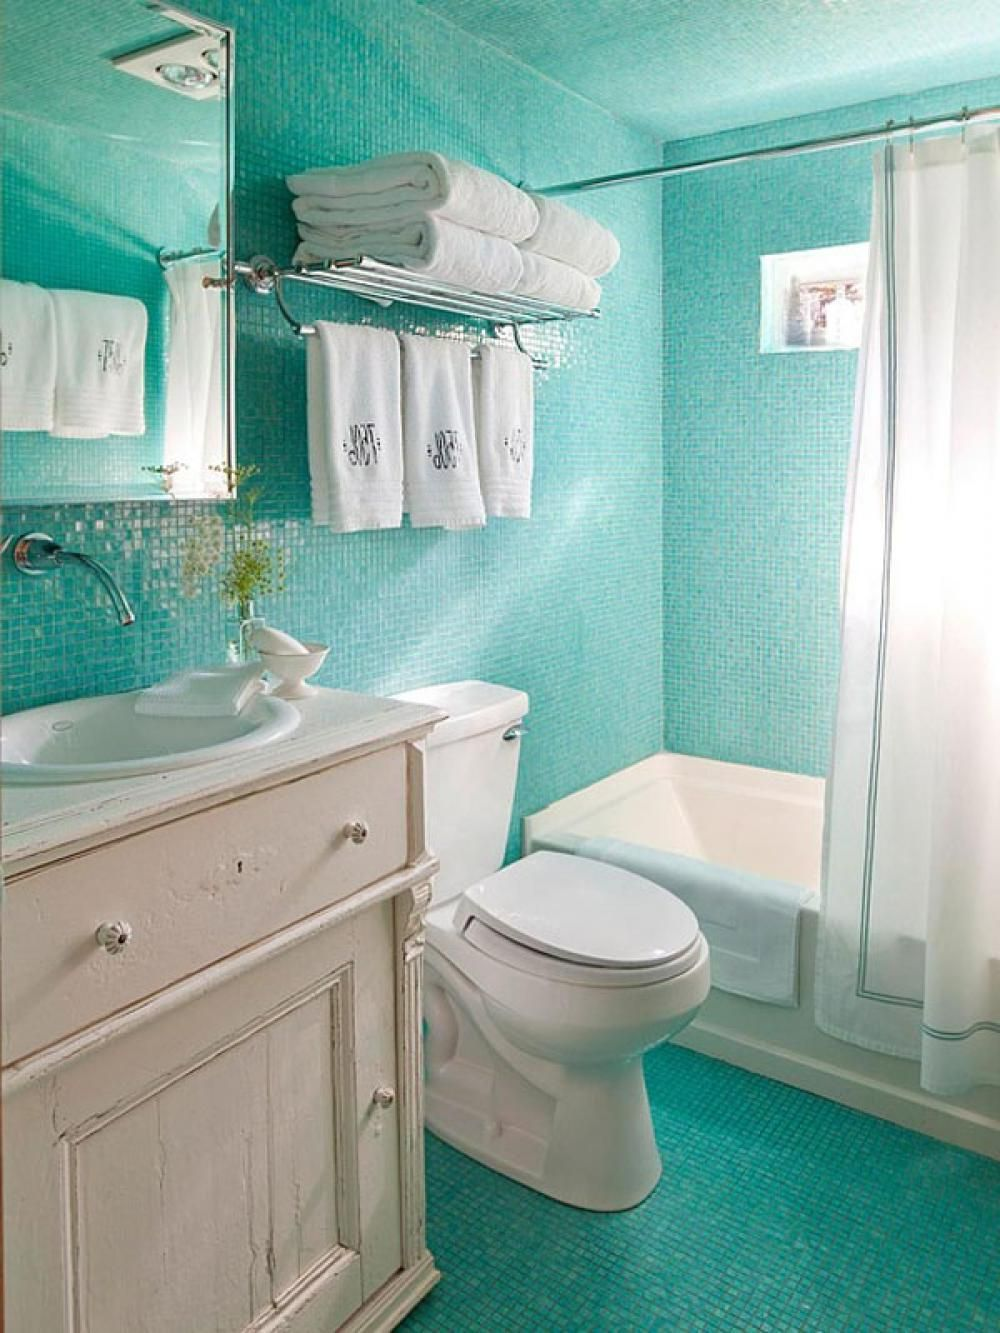 Chic turquoise mosaic tiles ocean inspired bathroom with for Small bathroom designs no toilet